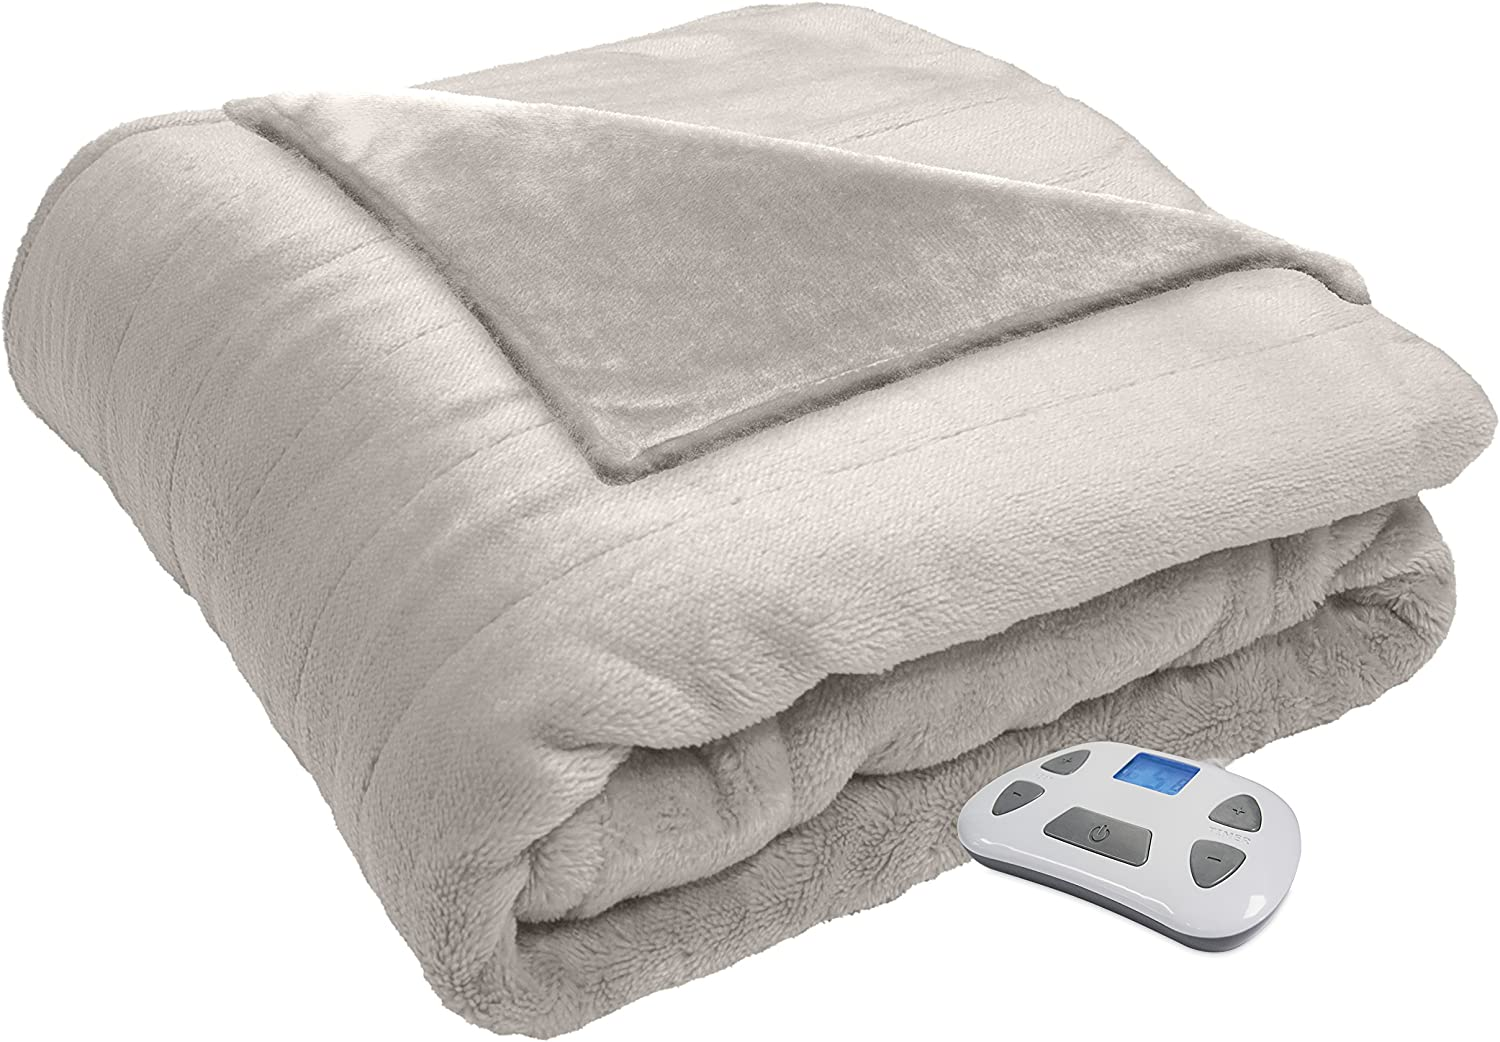 Serta Heated Electric  Silky Plush Blanket with Programmable Digital Controller, Full, Ivory Model 0917